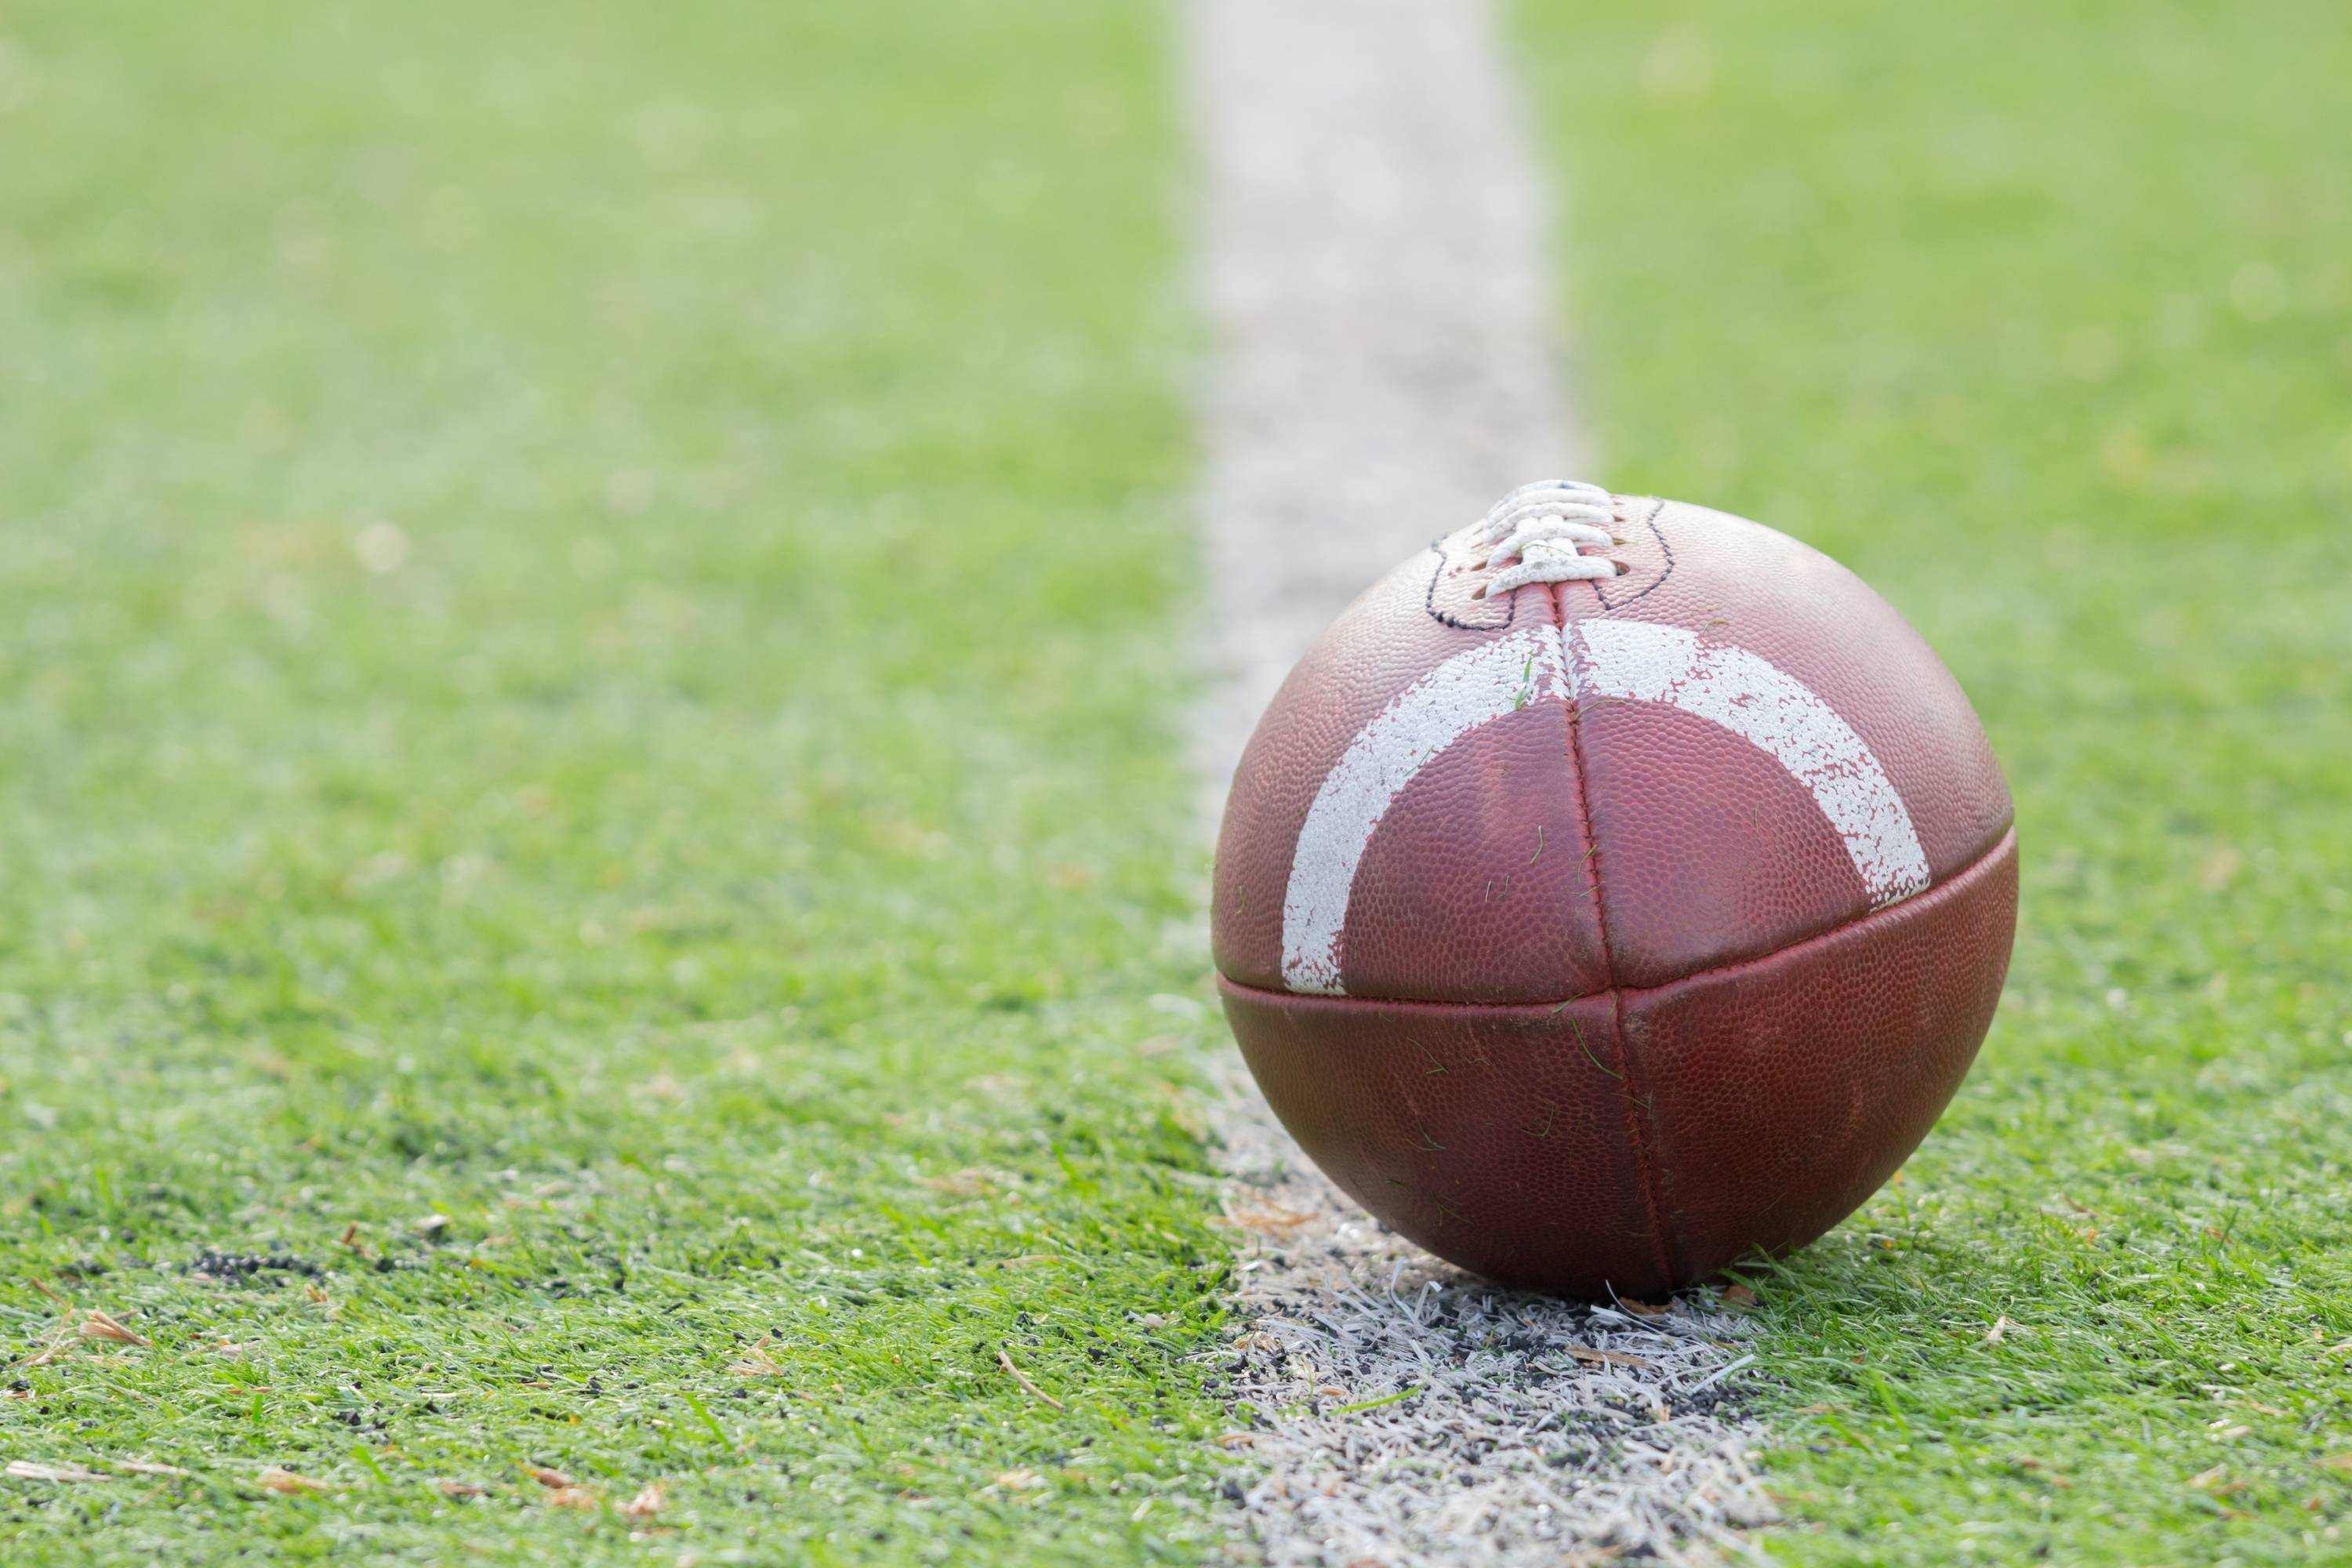 Spotswood Still Looking For First Win On The Gridiron